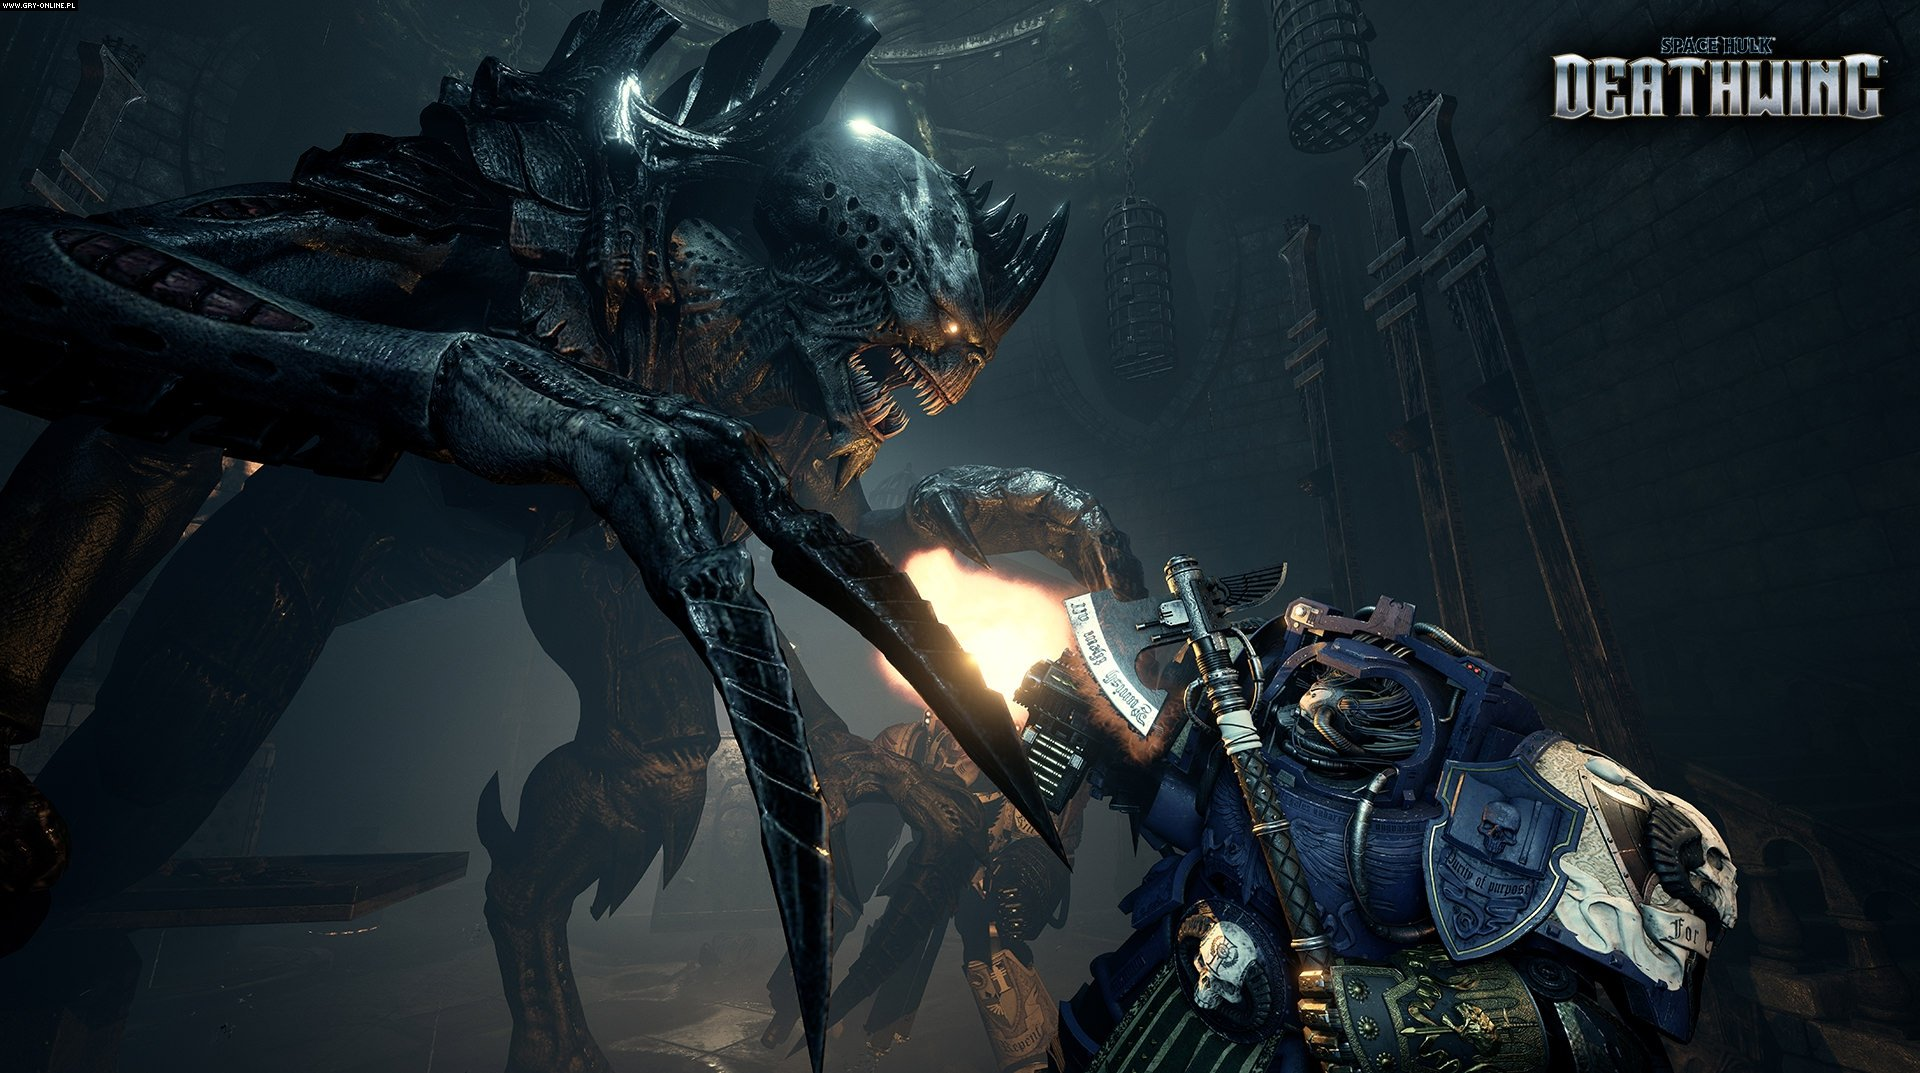 Space Hulk: Deathwing PC, PS4, XONE Gry Screen 9/30, Streum on Studio, Focus Home Interactive